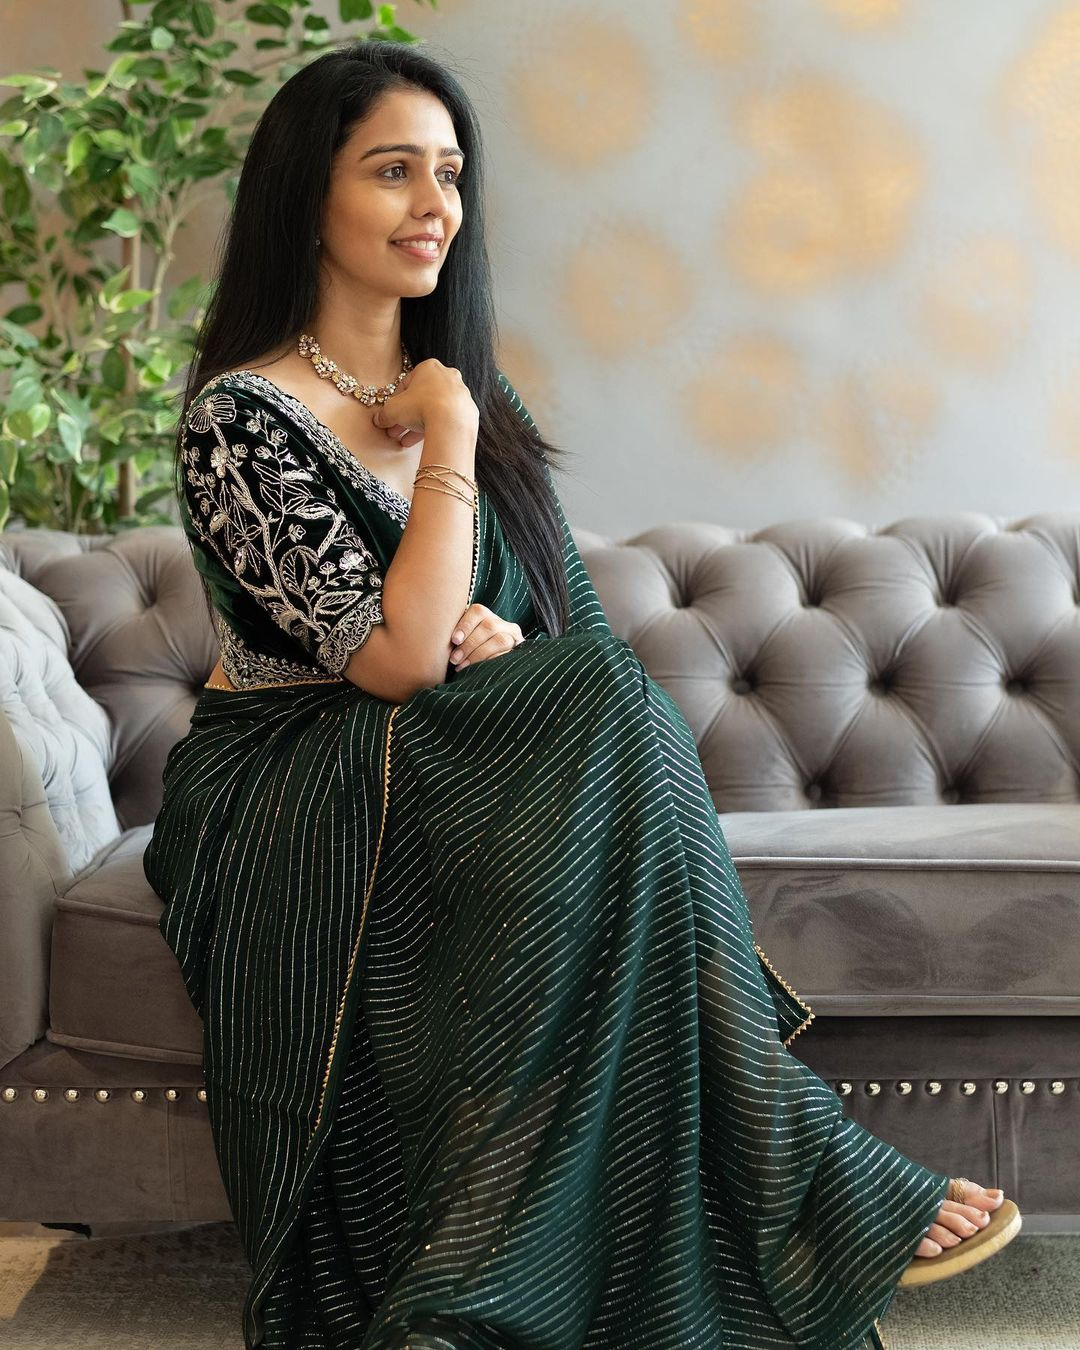 Signature Velvet embellished Blouse with Stripes Saree in New Bottle Green shade. 2021-06-09